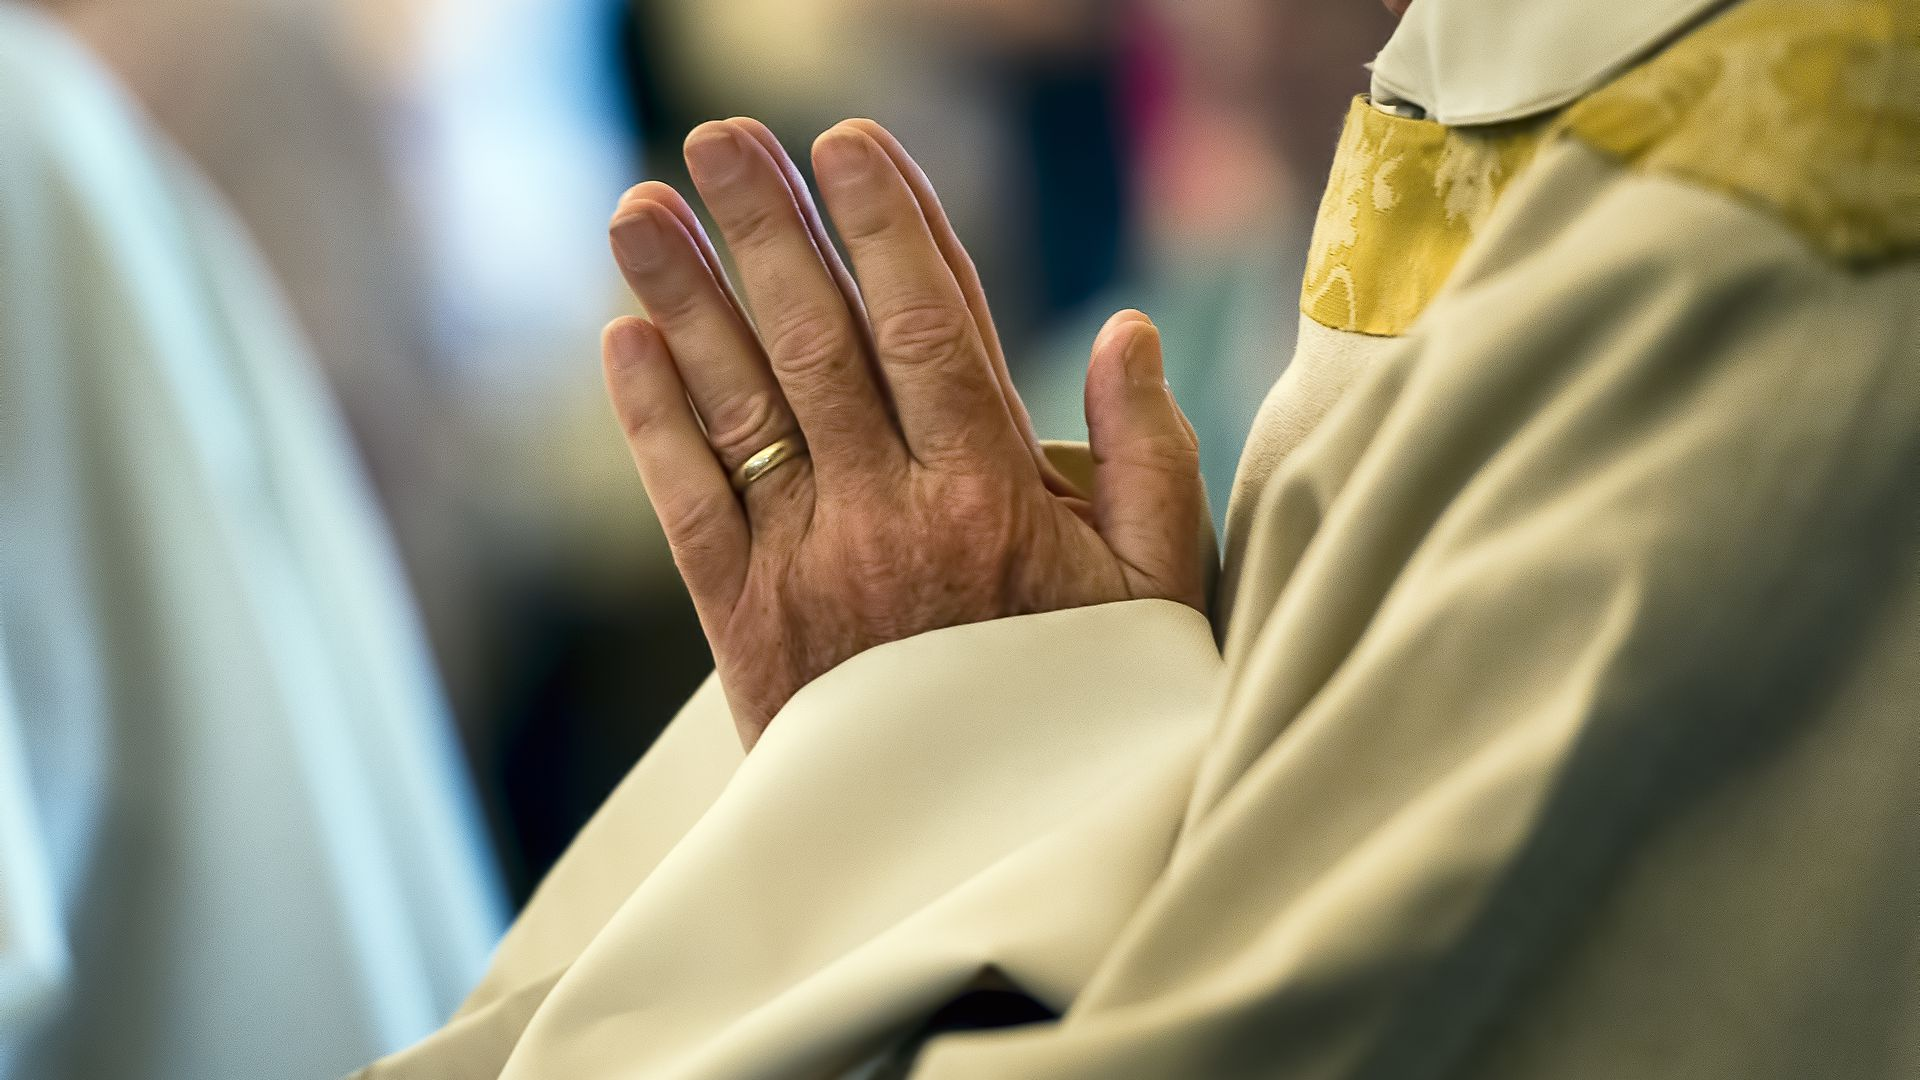 A priest's hands in prayer